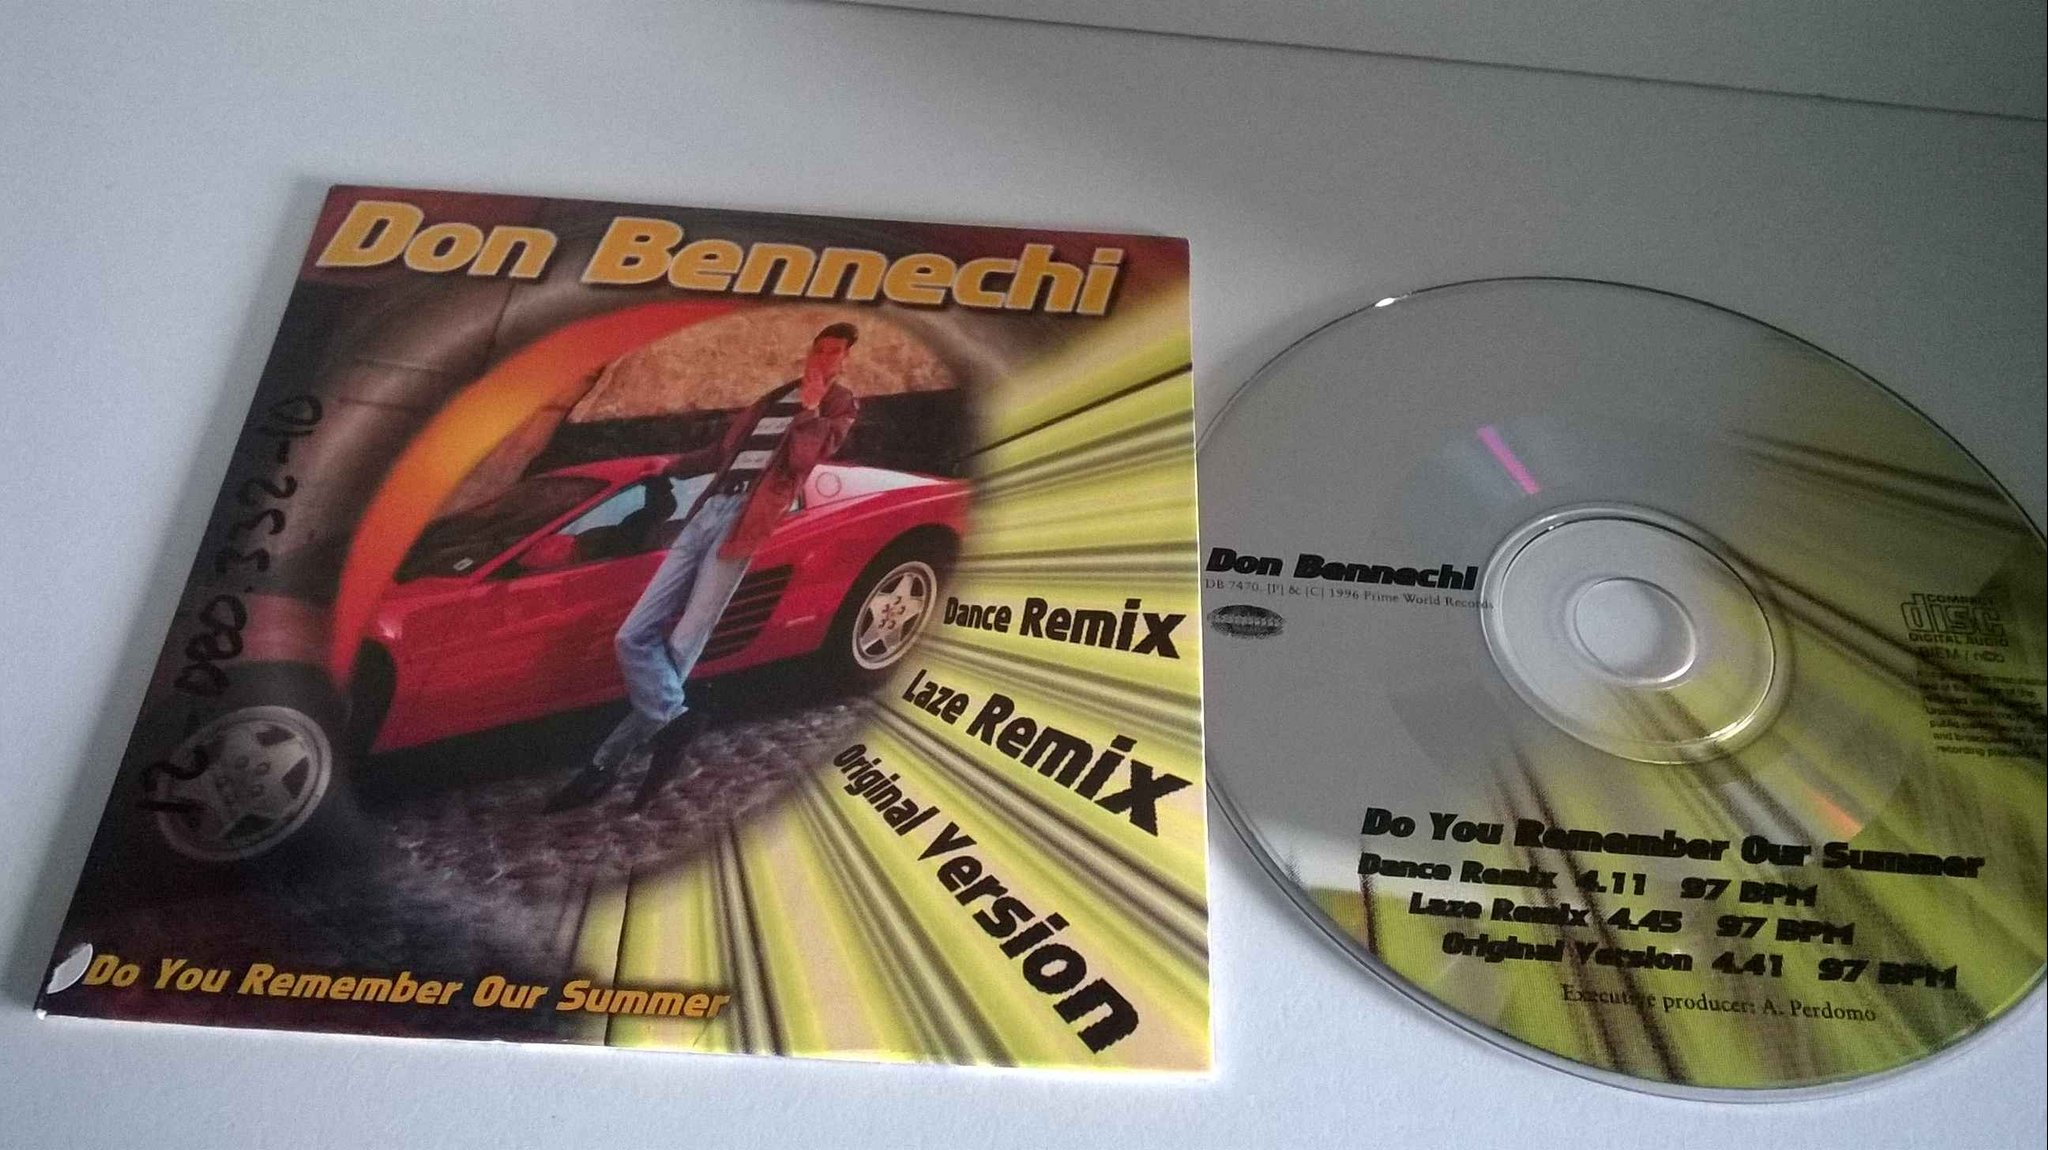 Don Bennechi - Do you remember our summer, single CD